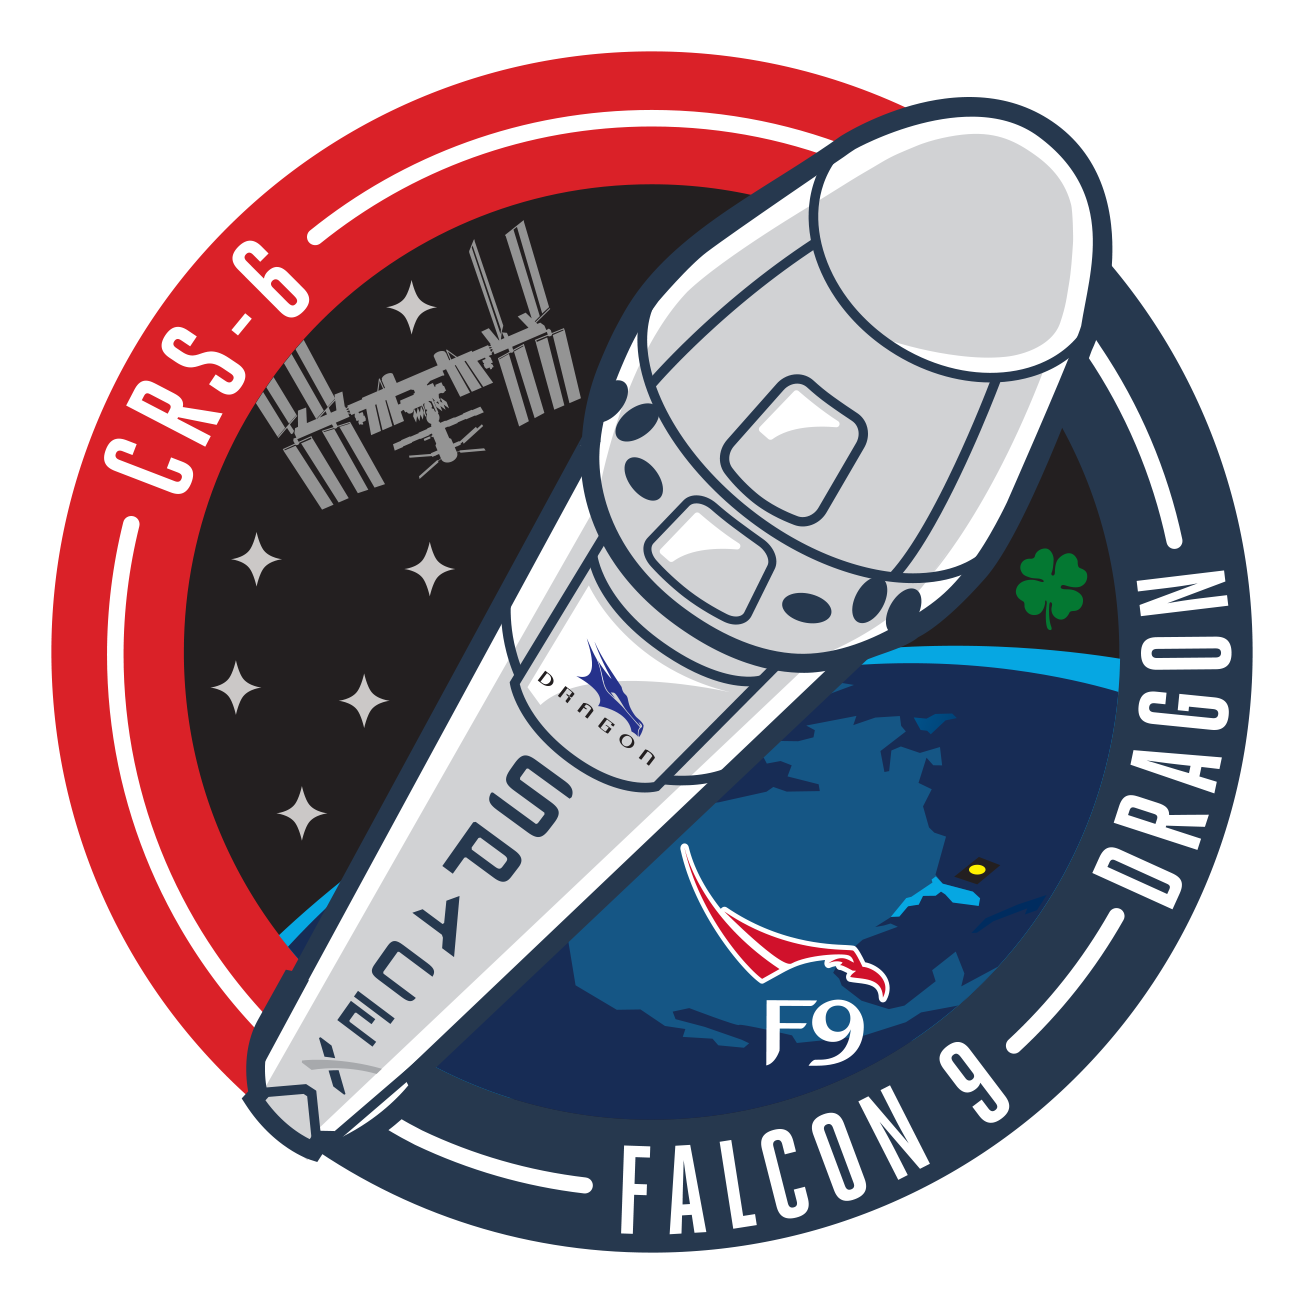 spacex crs 4 logo - photo #8